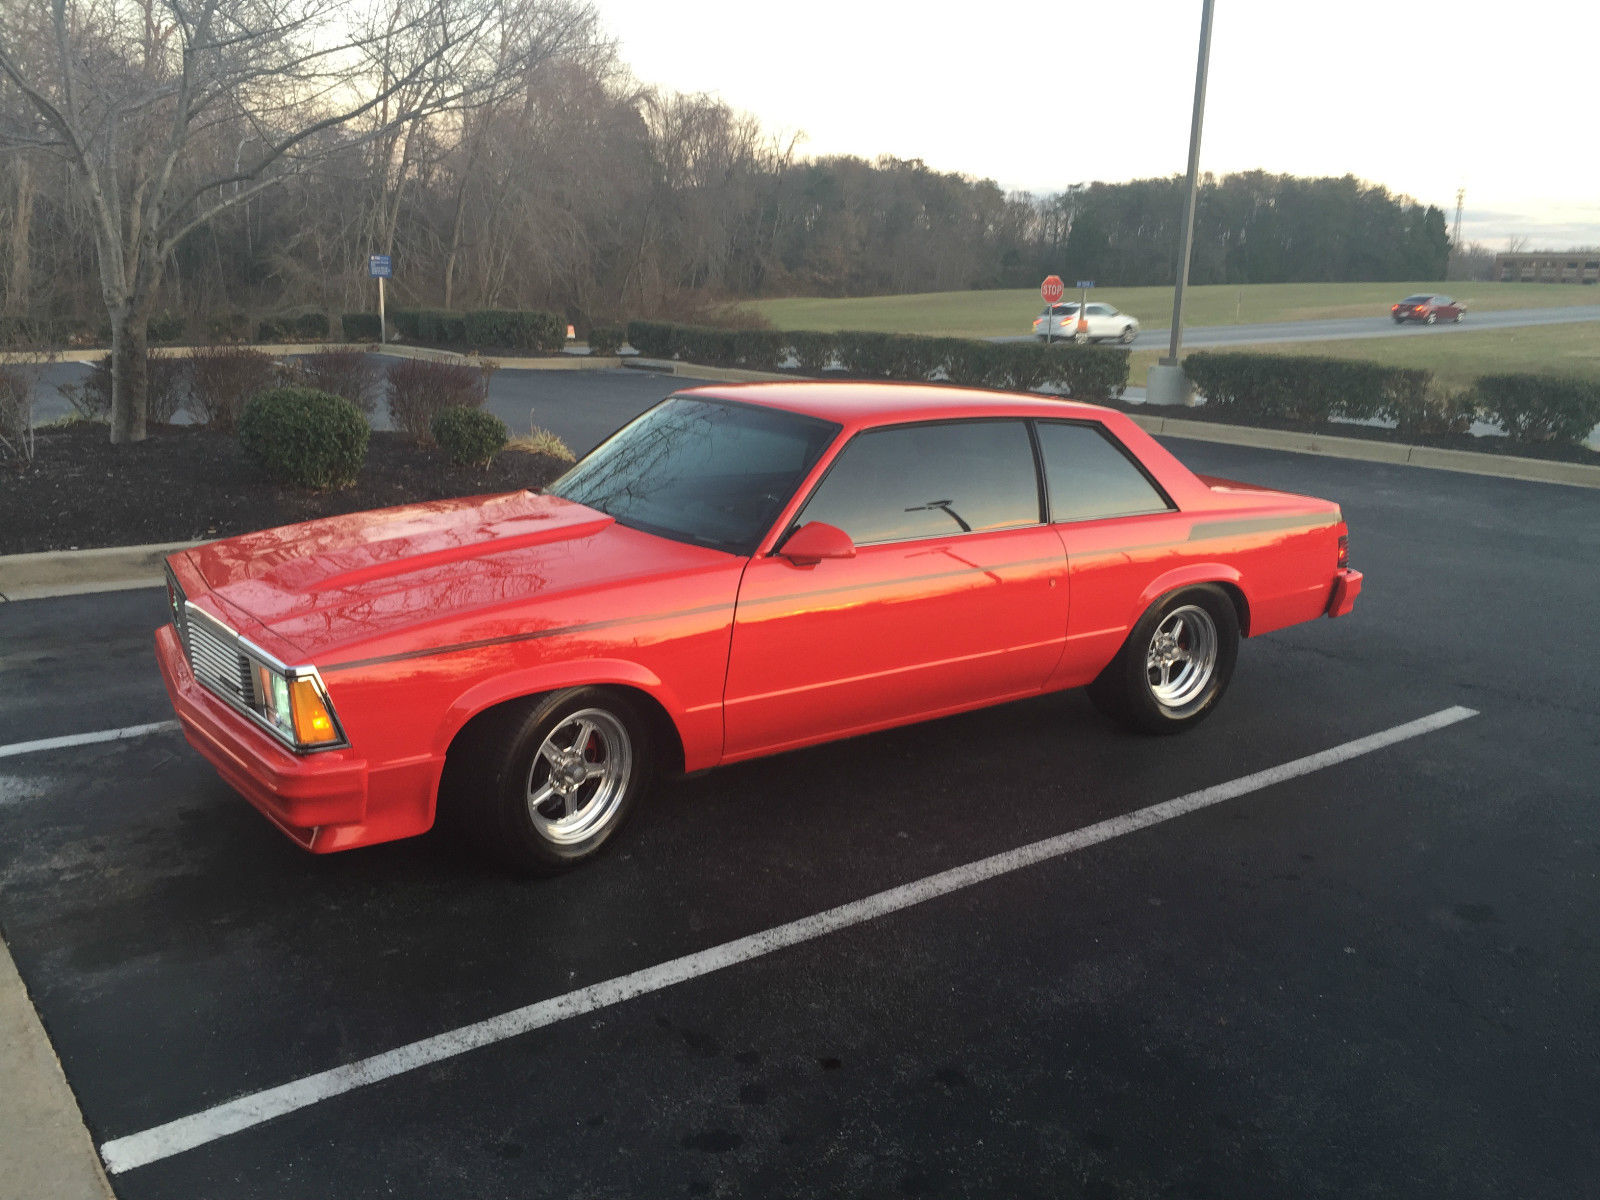 1981 Chevy Malibu Ls1 Swap 6 Speed Manual Exc Conditon